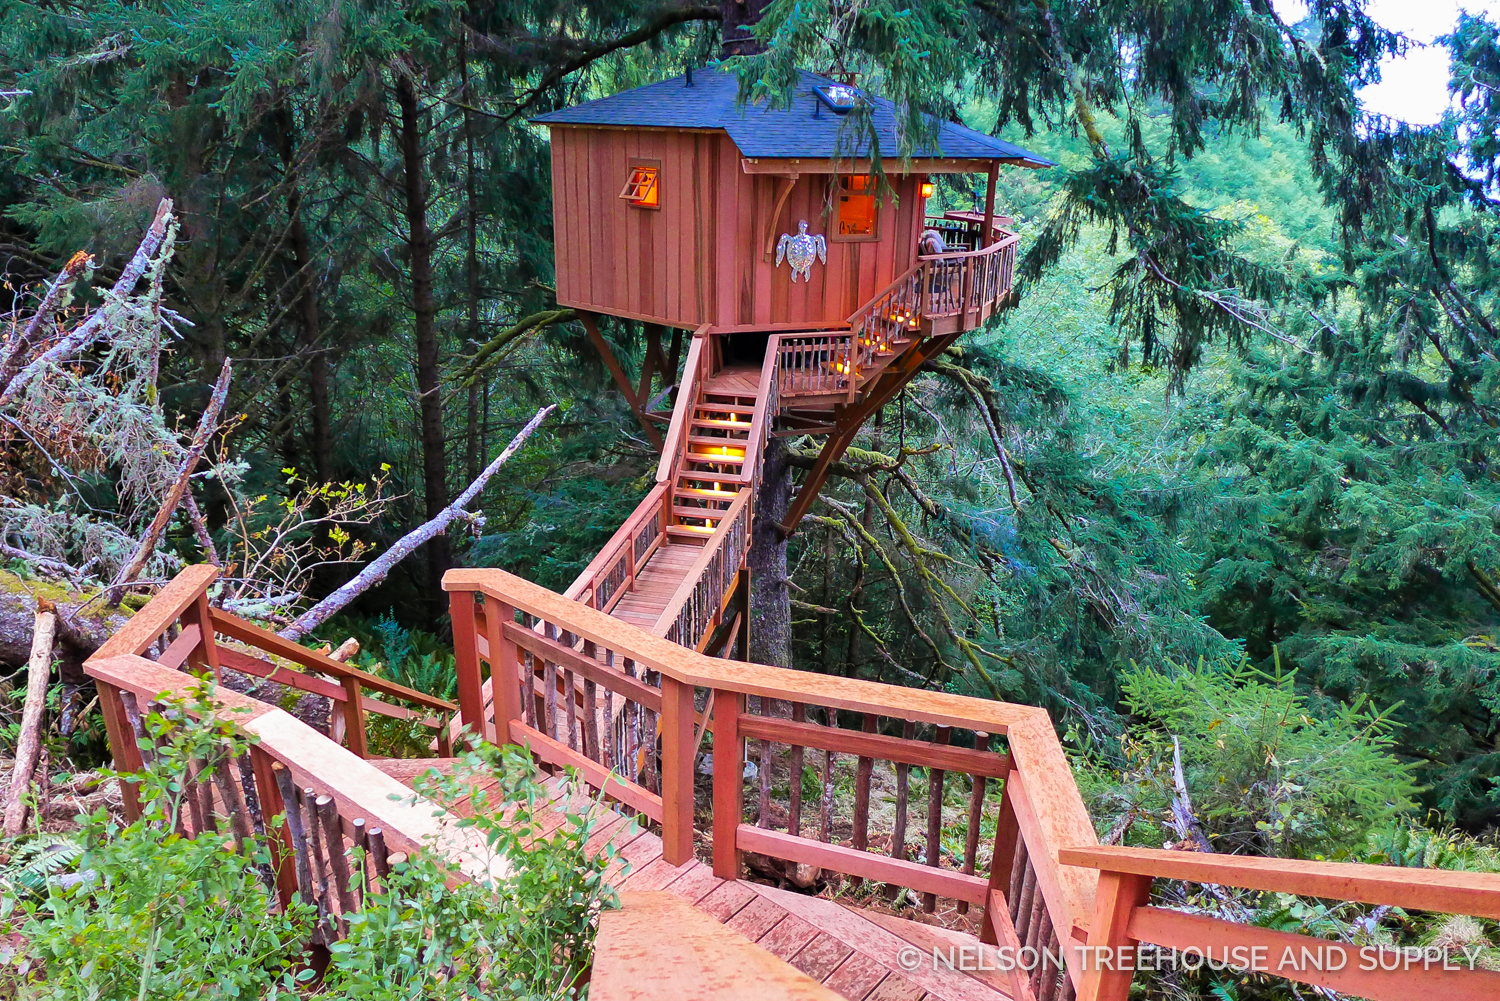 the Single spruce Treehome.